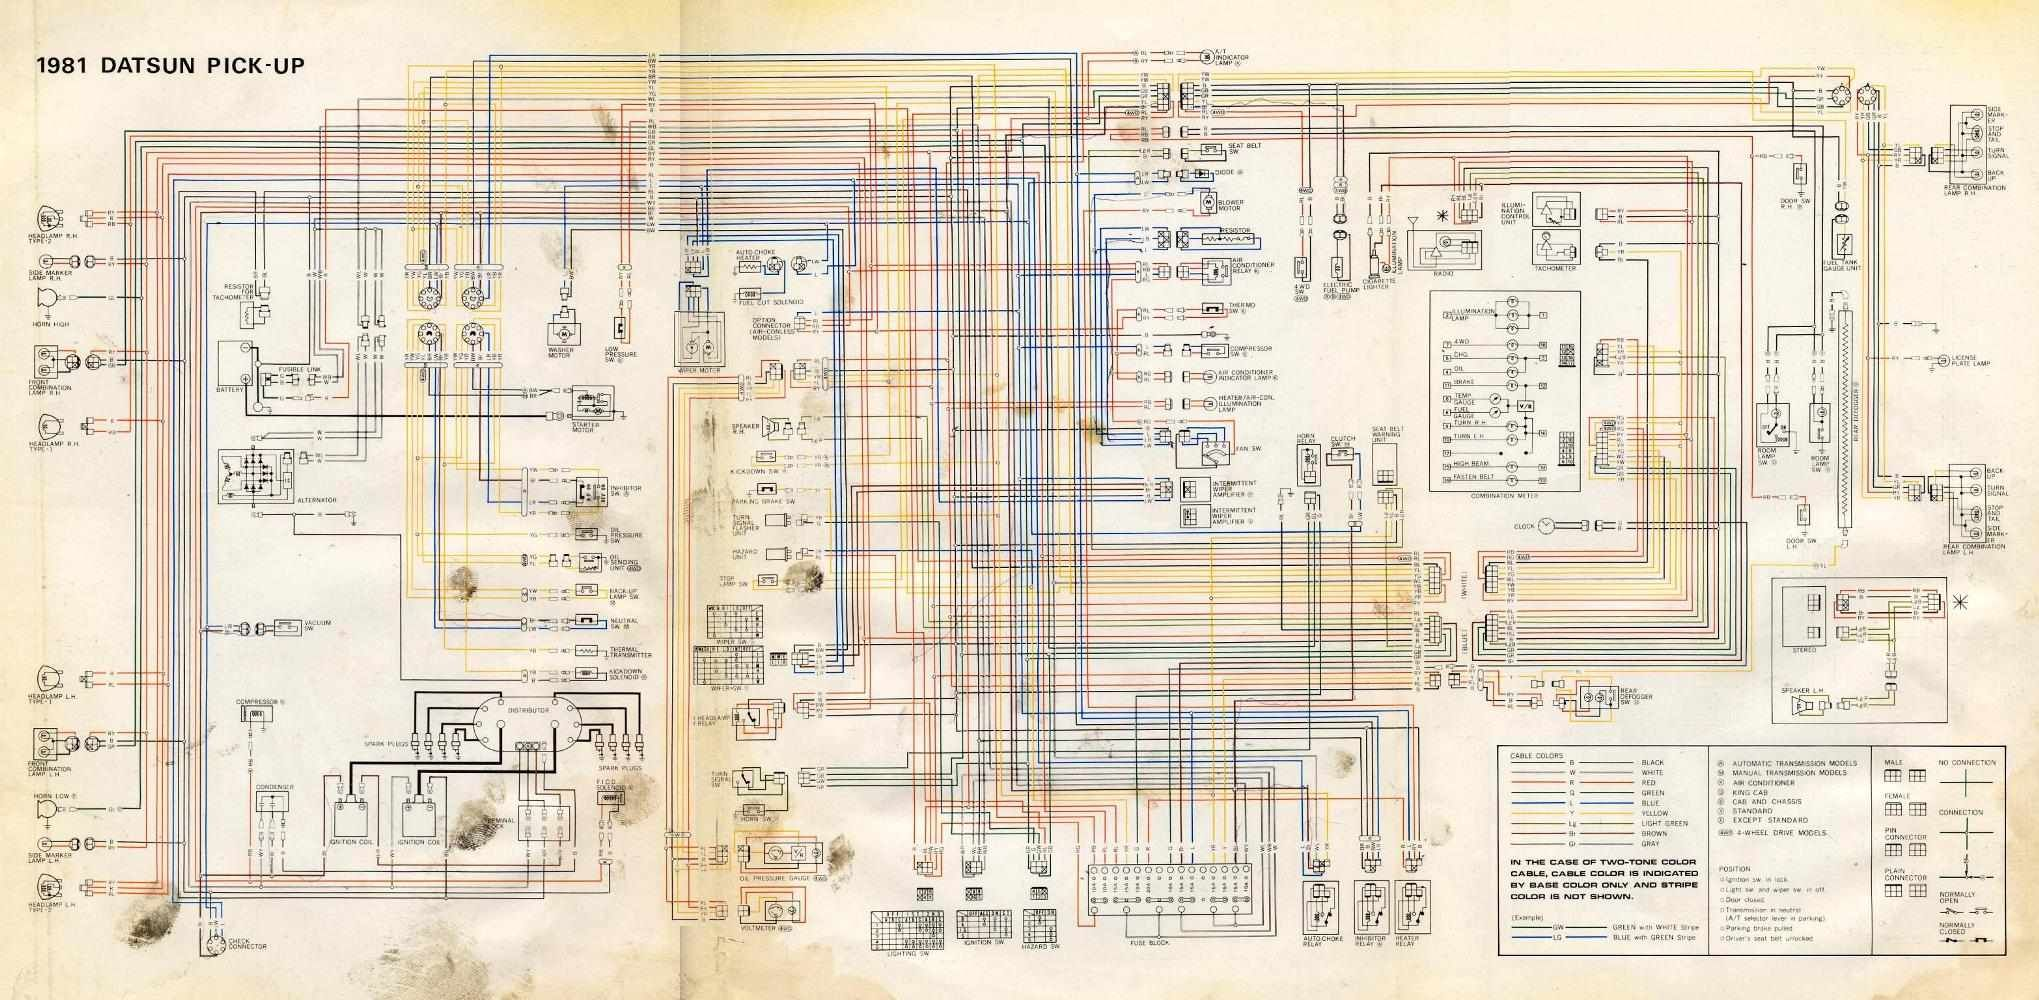 willys mb wiring diagram toyota celica at 1977 datsun 280z. Black Bedroom Furniture Sets. Home Design Ideas